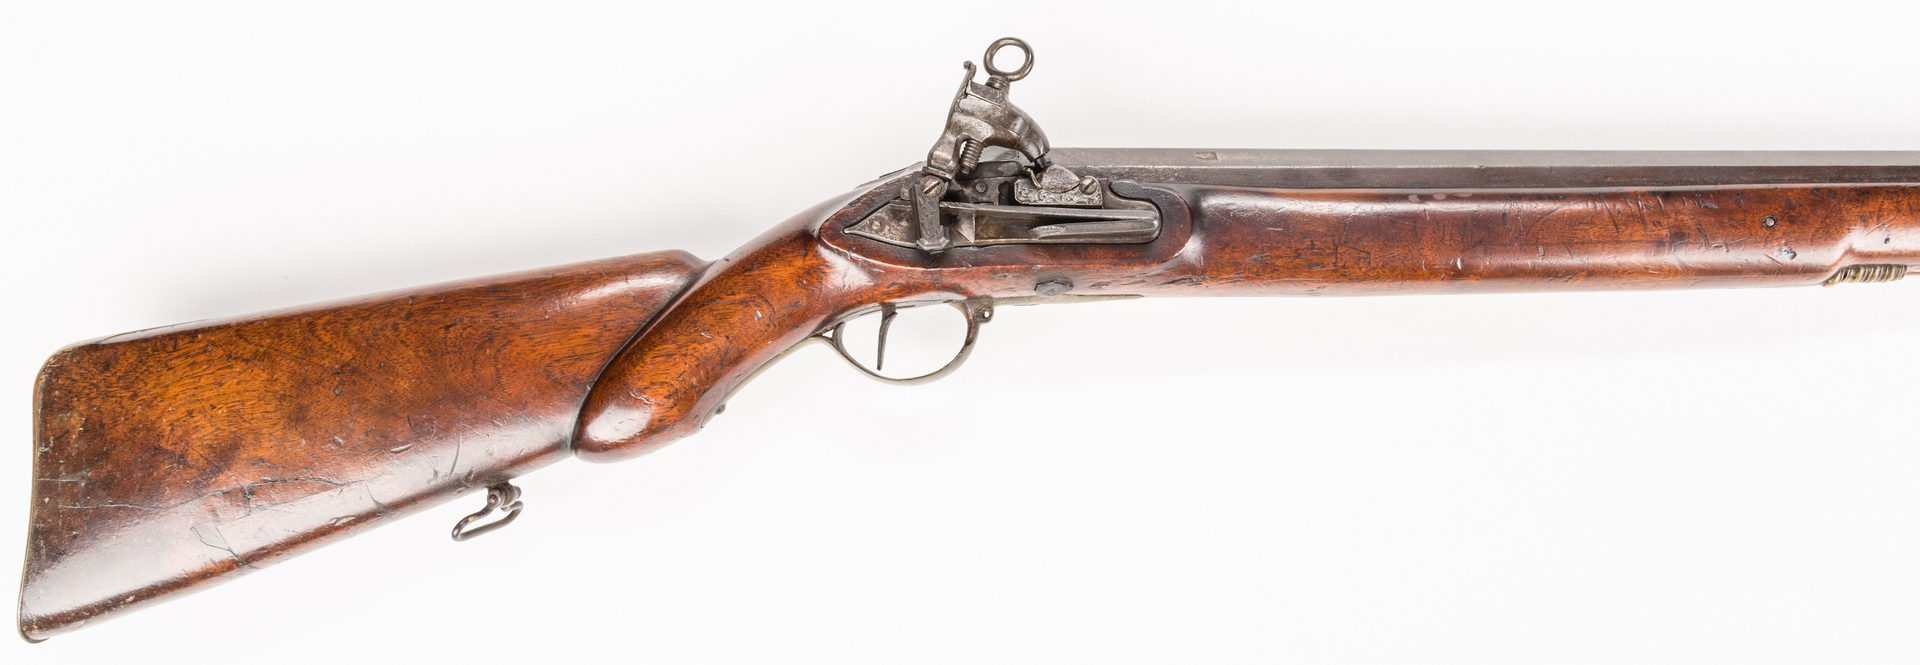 Lot 788: Spanish Miquelet Wall or Rampart Musket